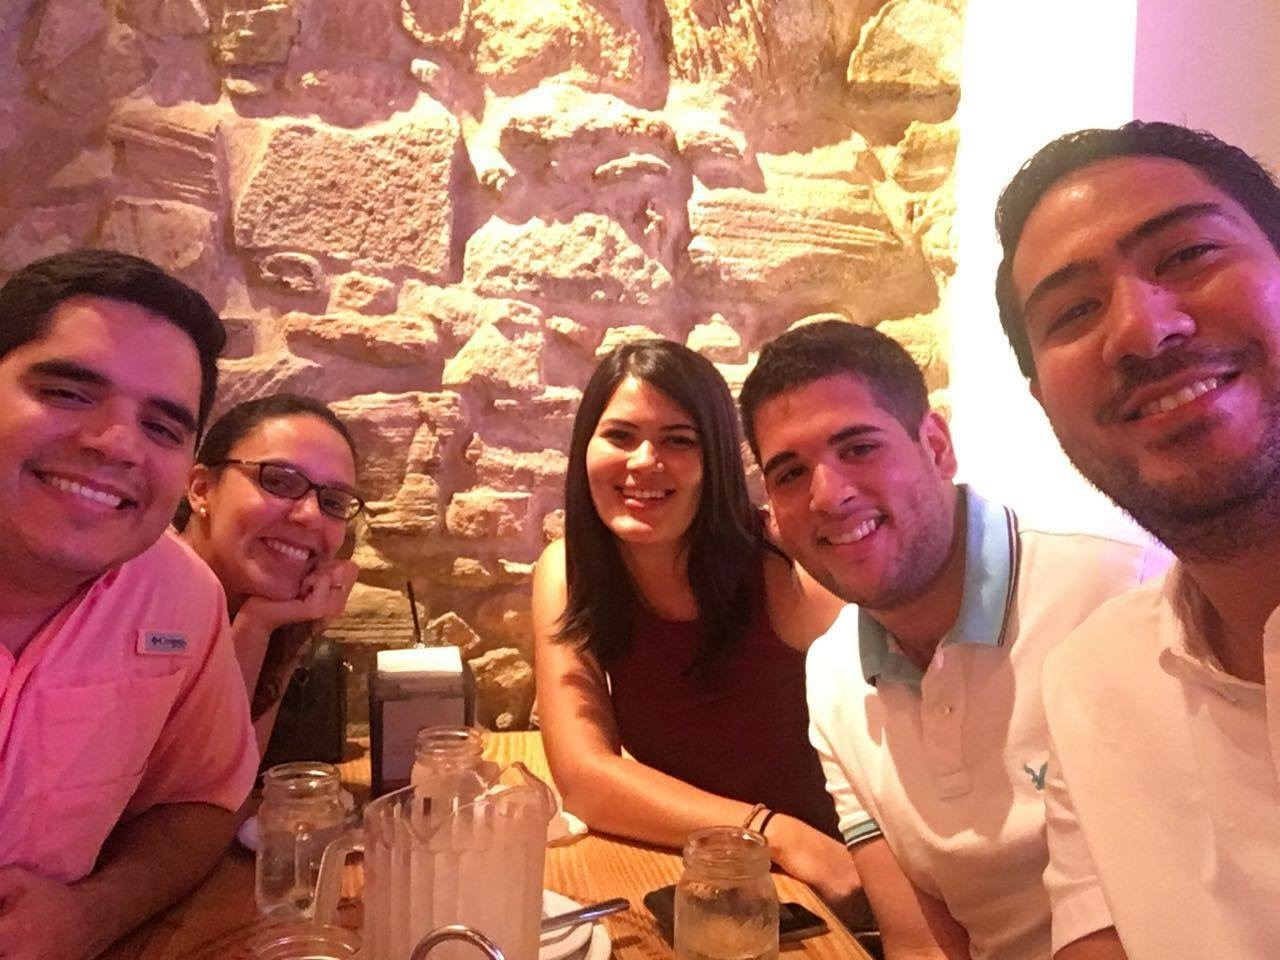 Dinner with my cousins in Panama.